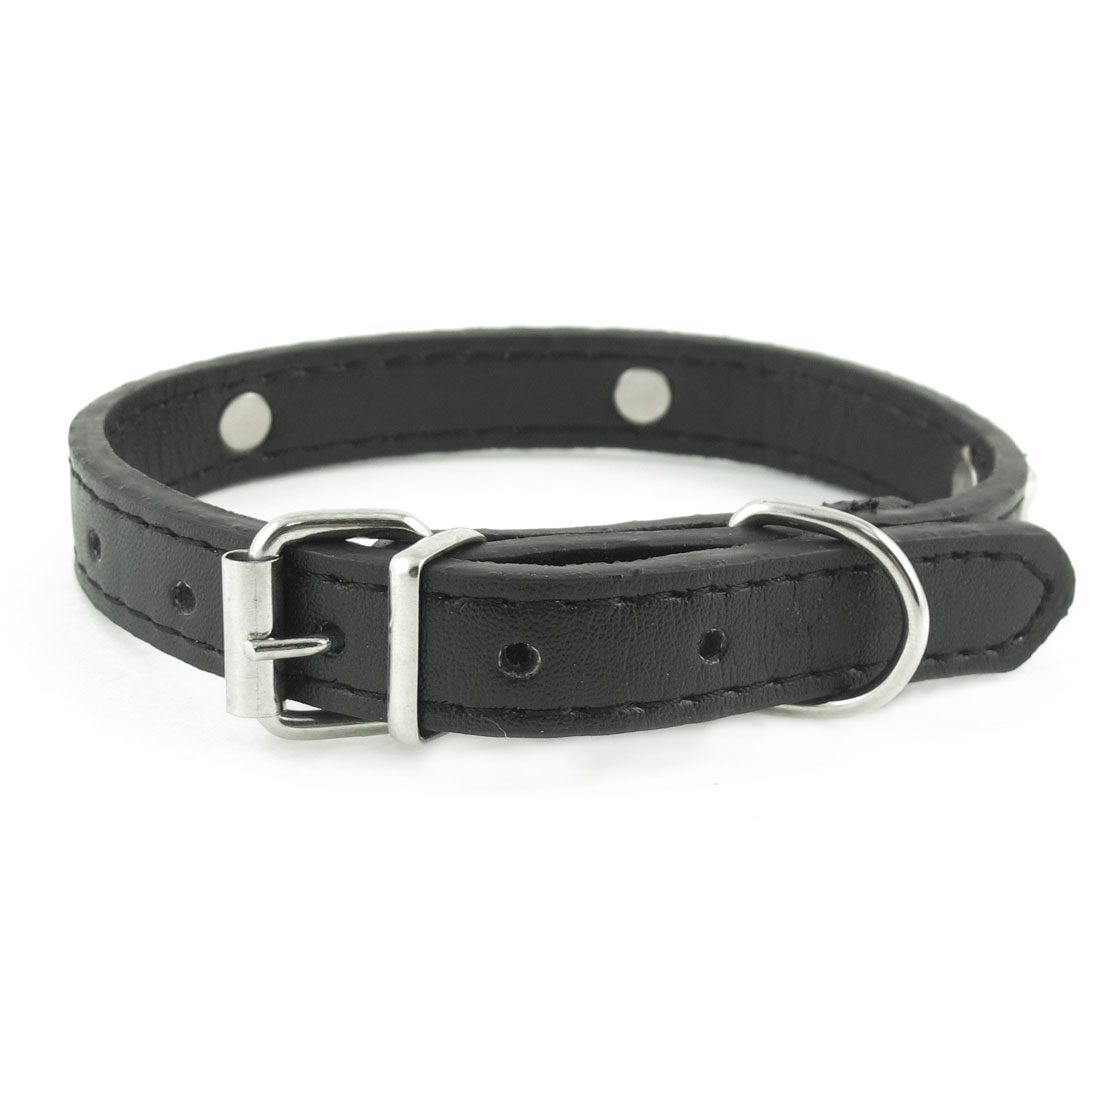 Metal Single Pin Buckle 1.4cm Wide Bone Detail Faux Leather Pet Dog Collar Black